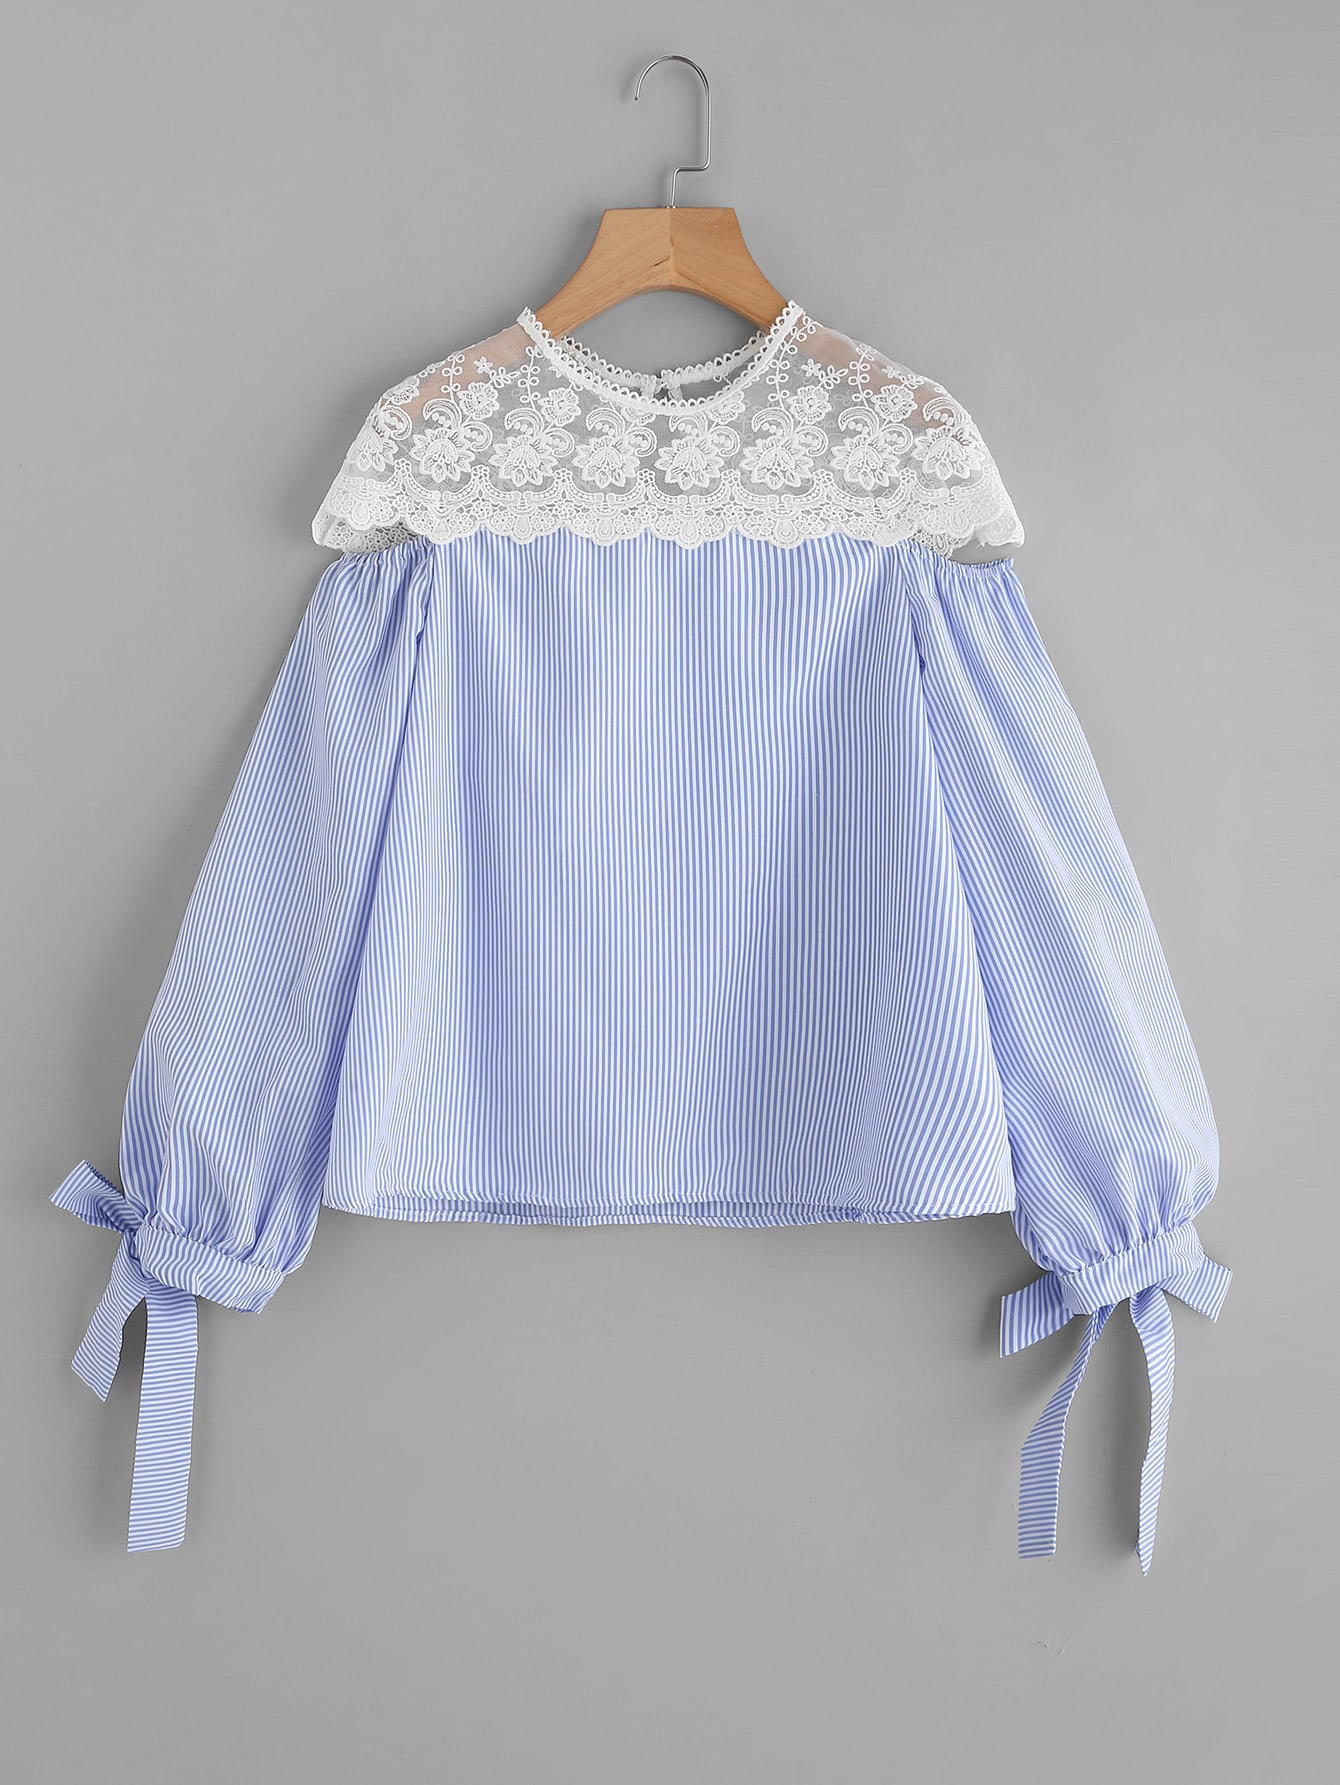 Contrast Embroidered Mesh Yoke Bow Tie Striped Blouse contrast embroidered mesh yoke bow tie striped blouse